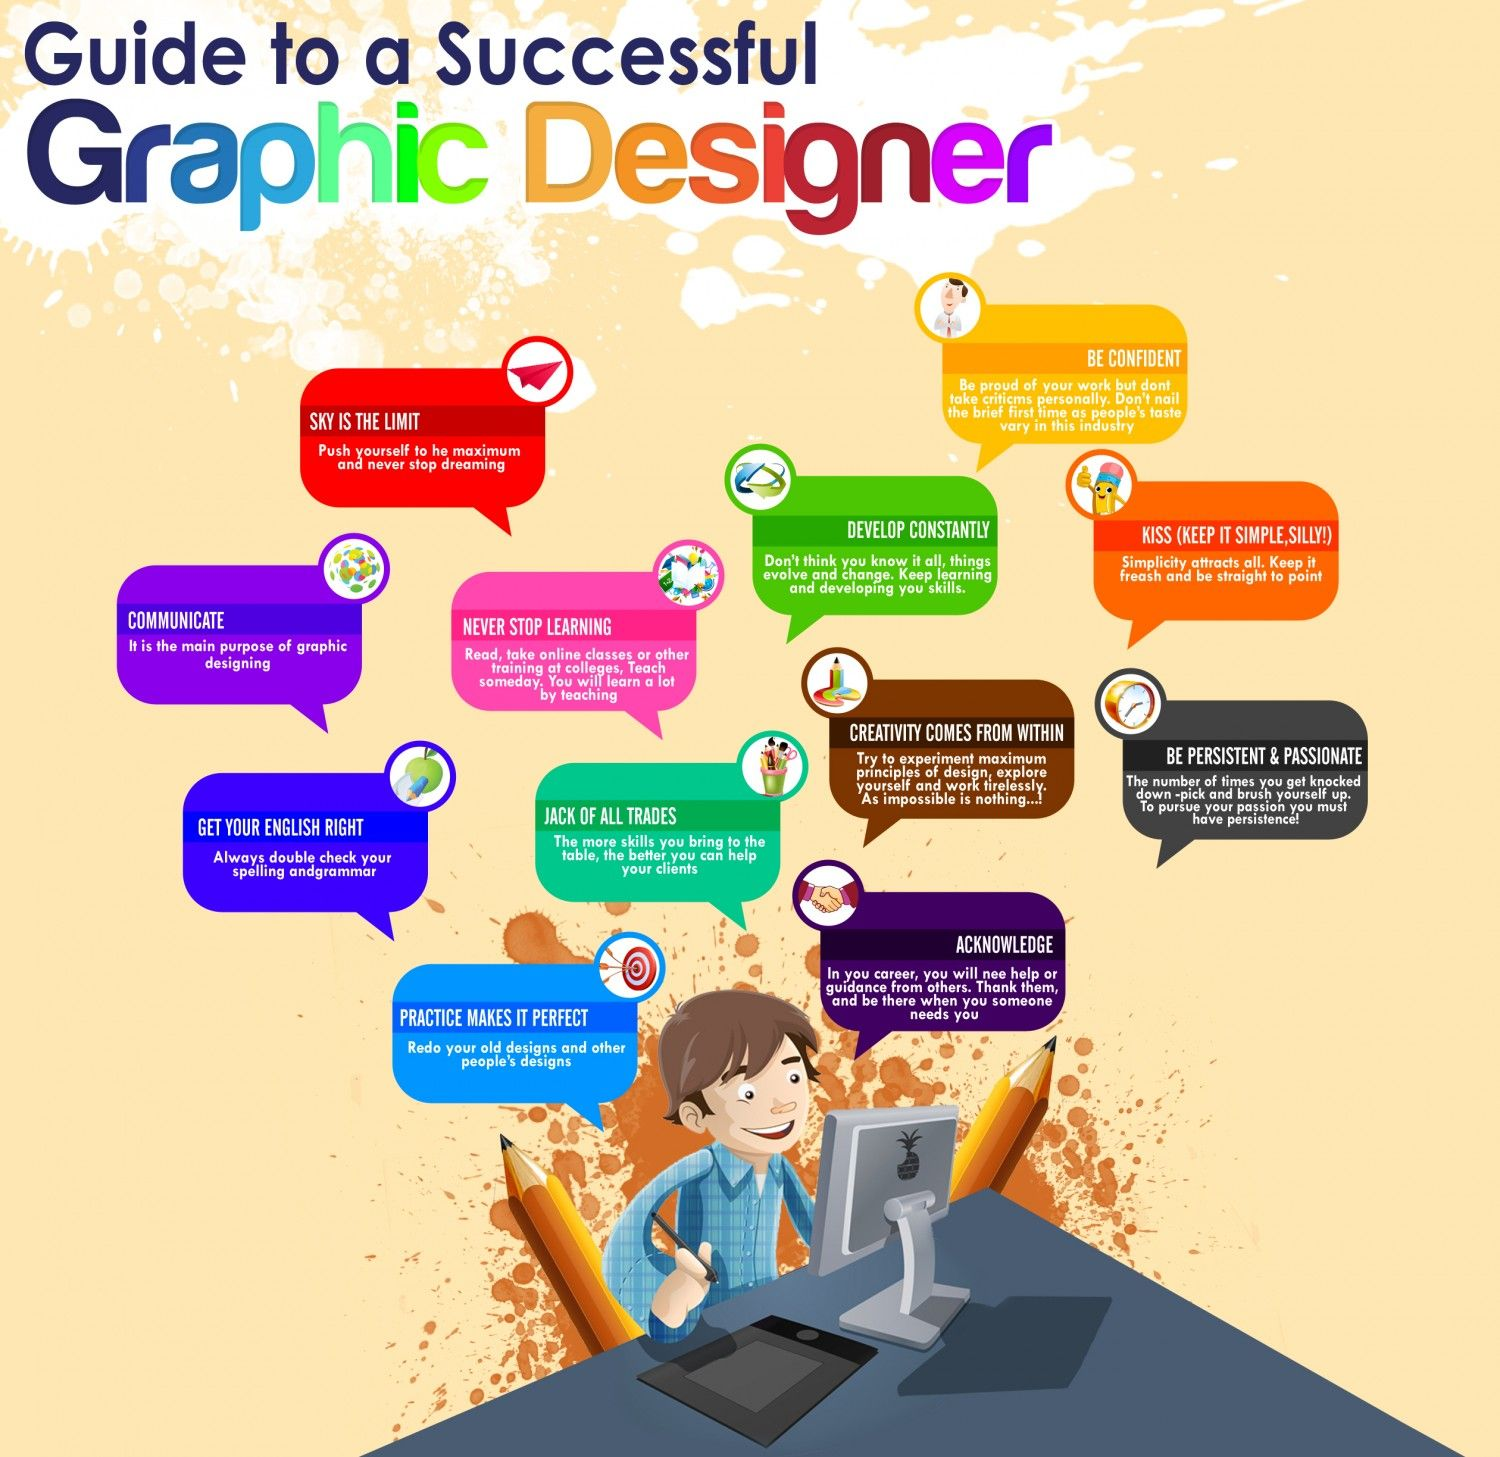 Guide to A Successful Graphic Designer #Infographic